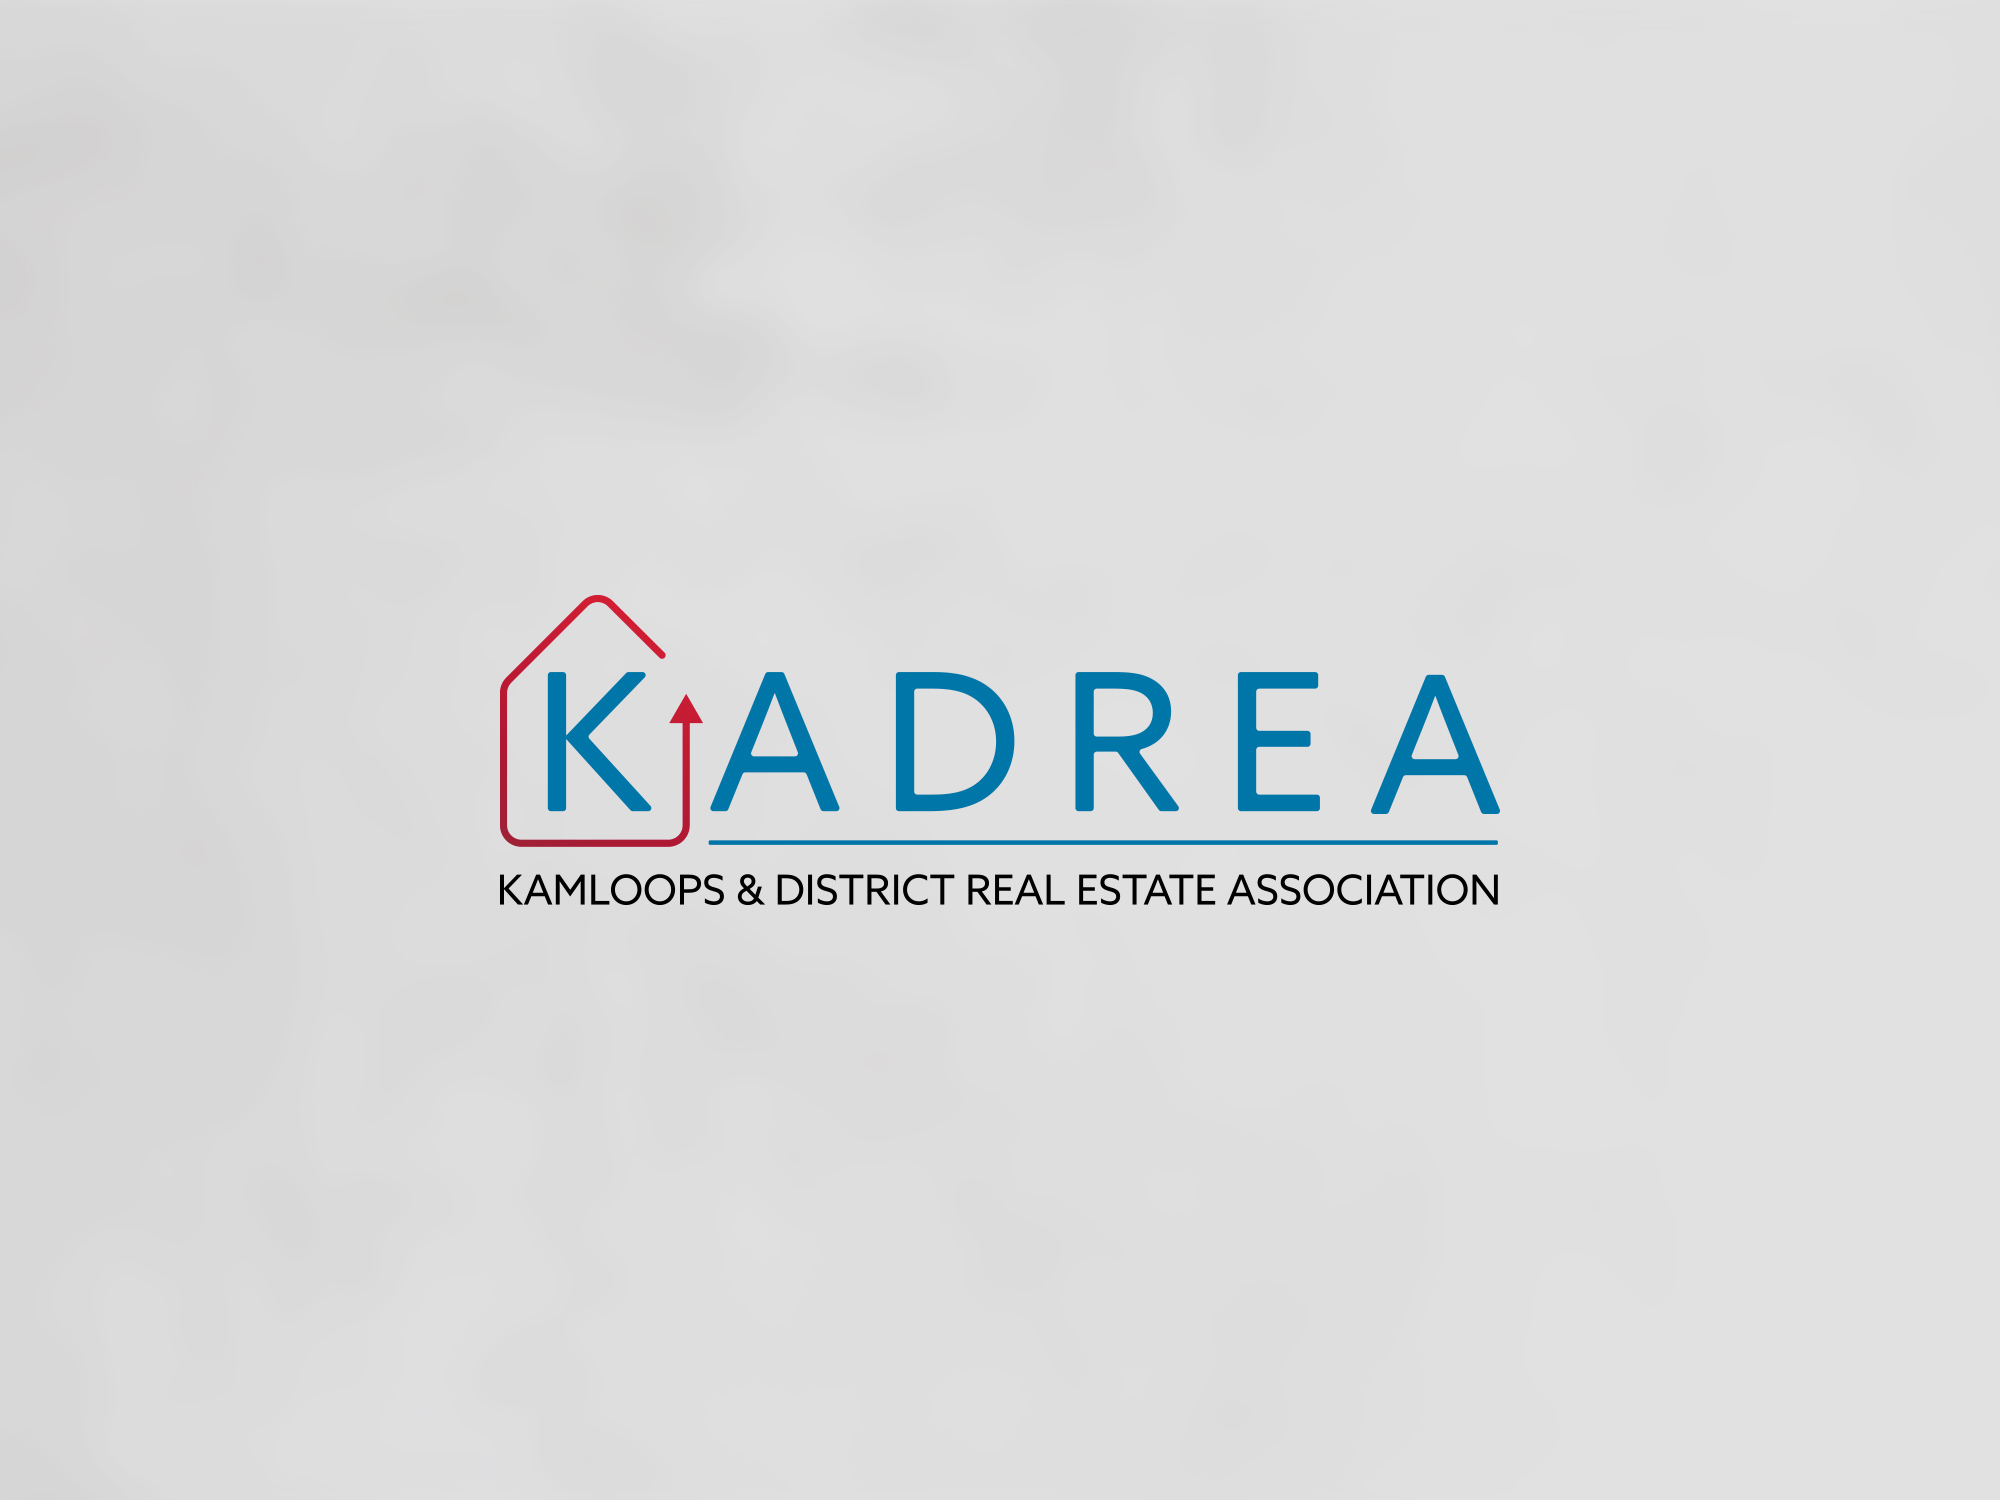 New logo design for the Kamloops and District Real Estate Association.